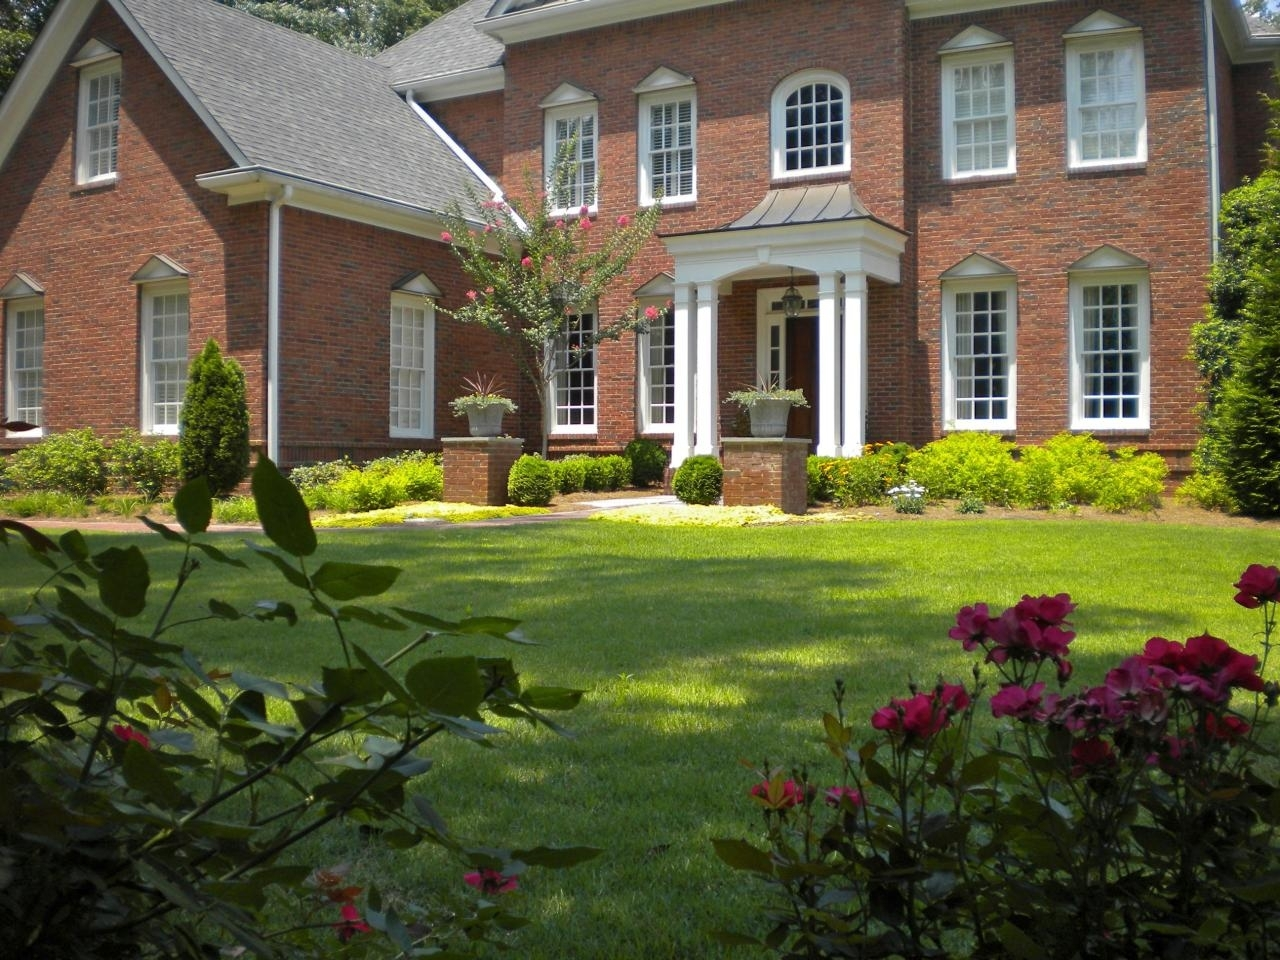 10 Most Recommended Landscape Ideas For Front Yard %name 2021